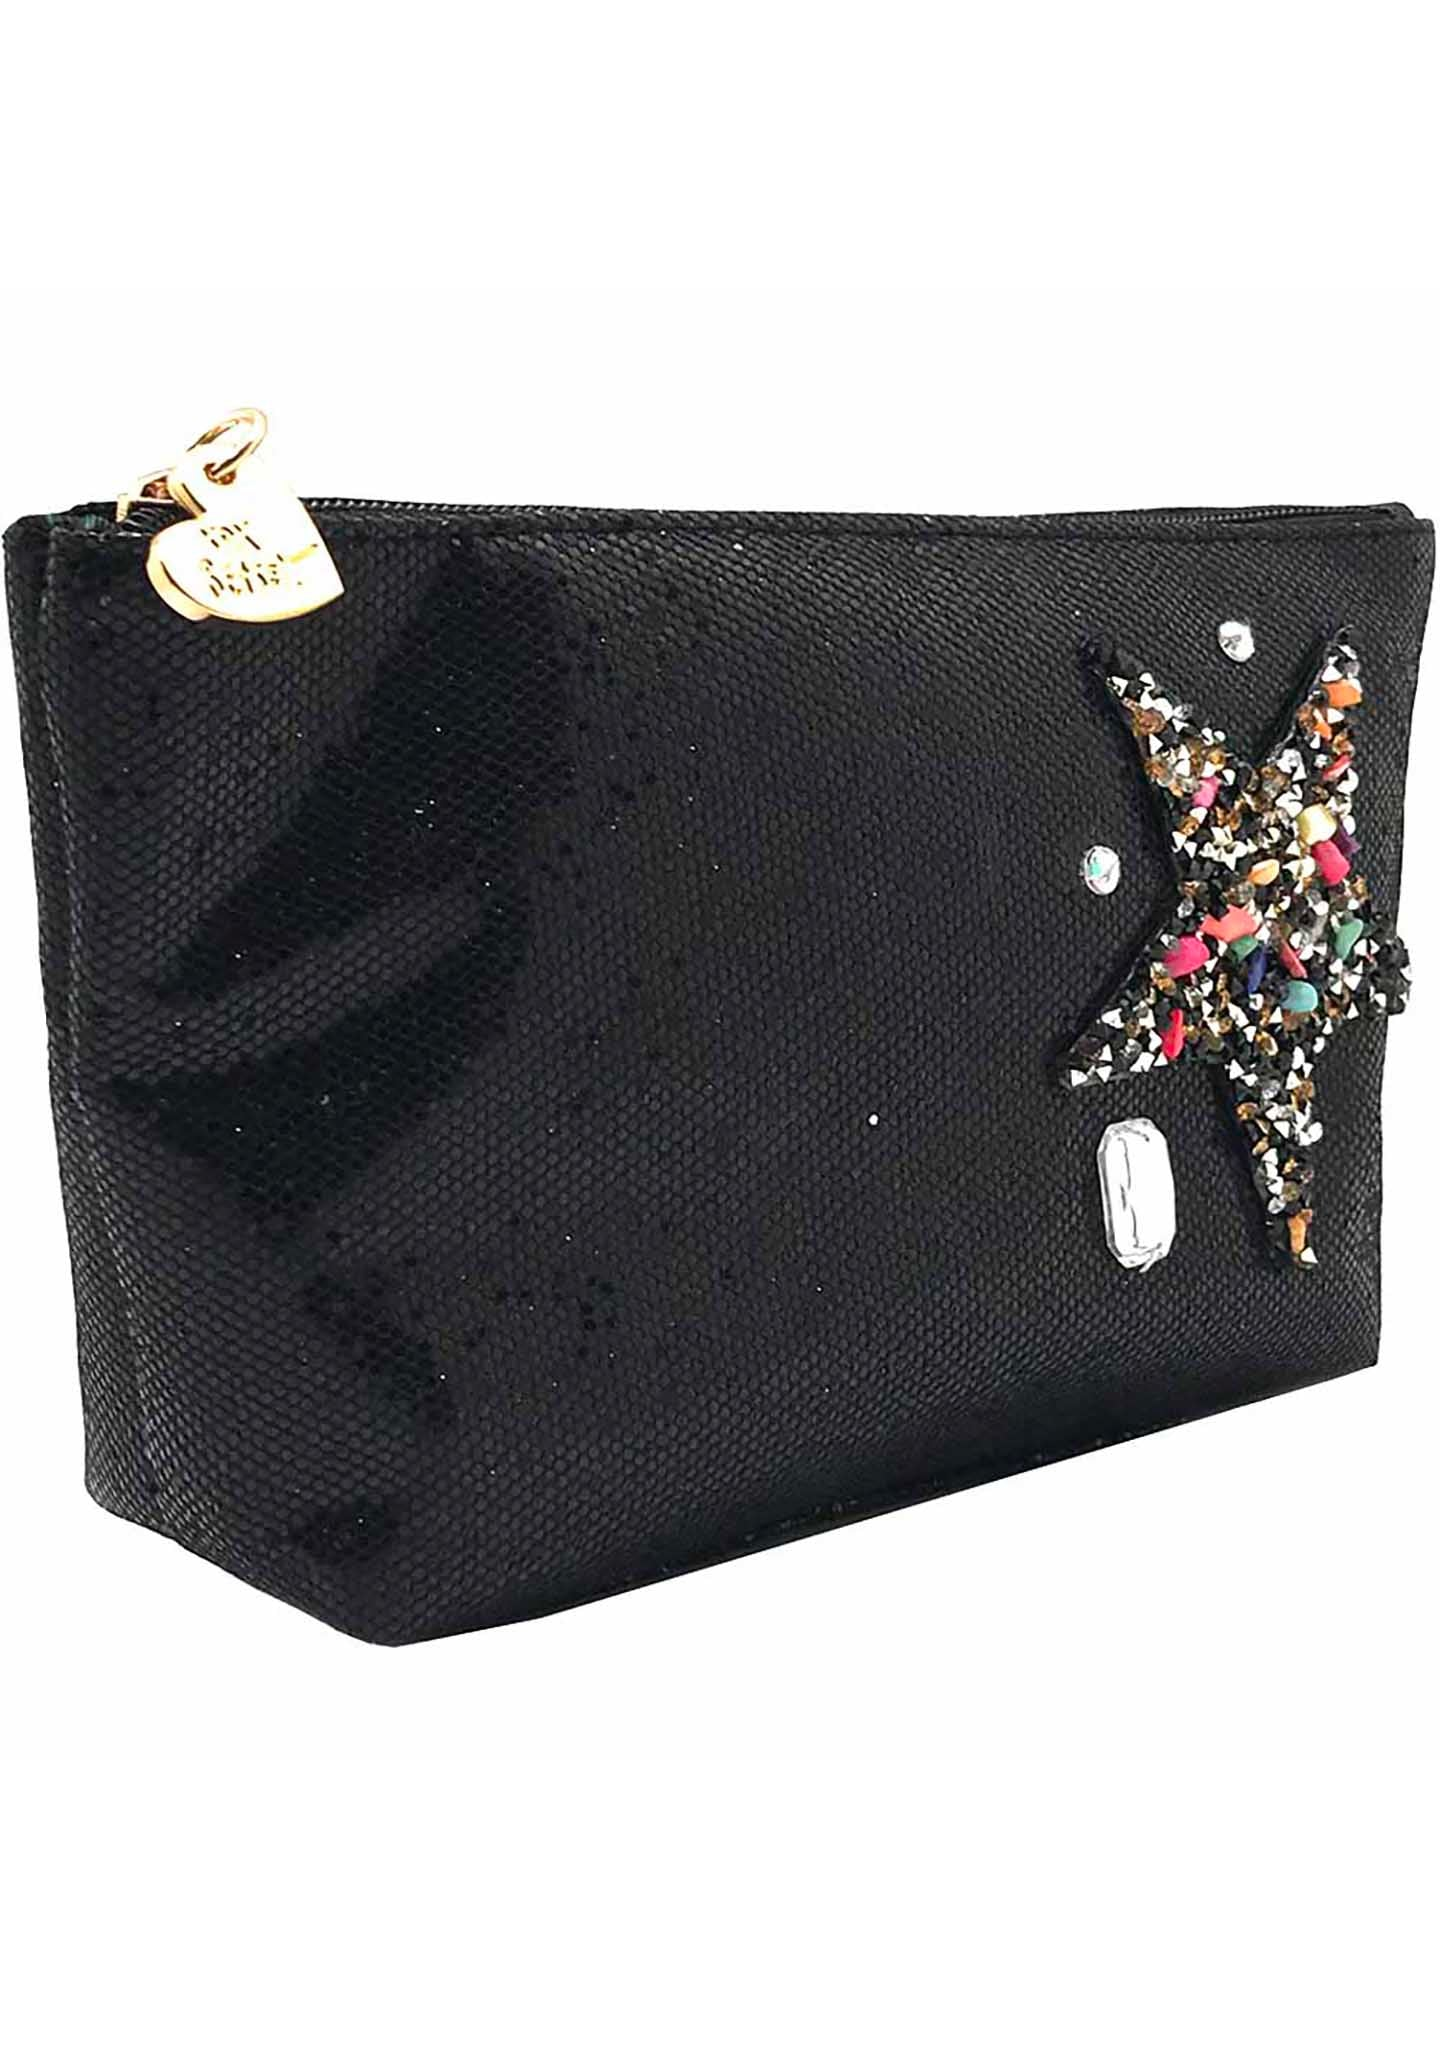 Betsey Johnson Shining Star Cosmetic Bag